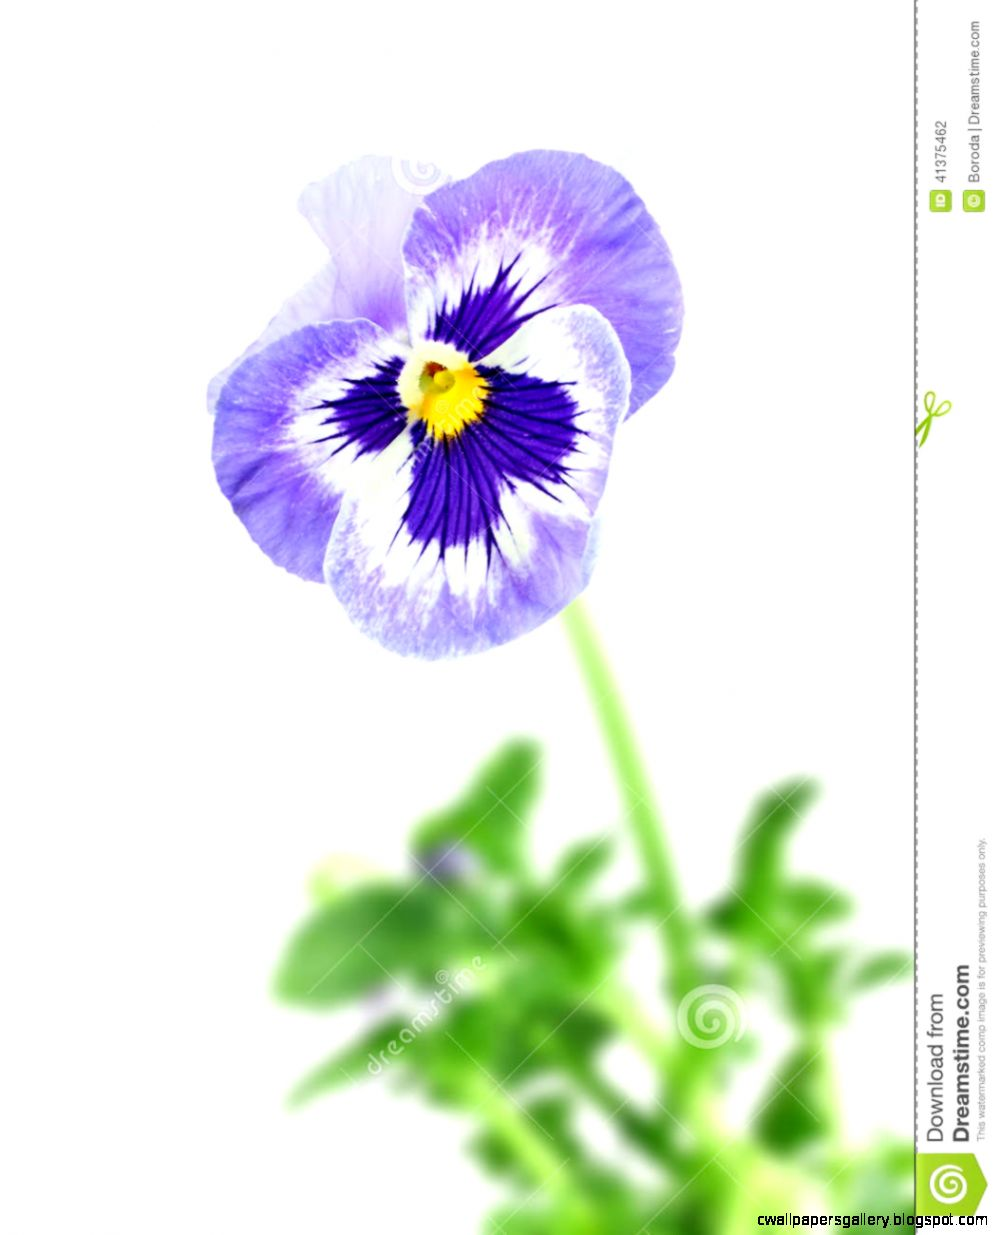 Blue Pansy Flower Stock Photo   Image 41375462